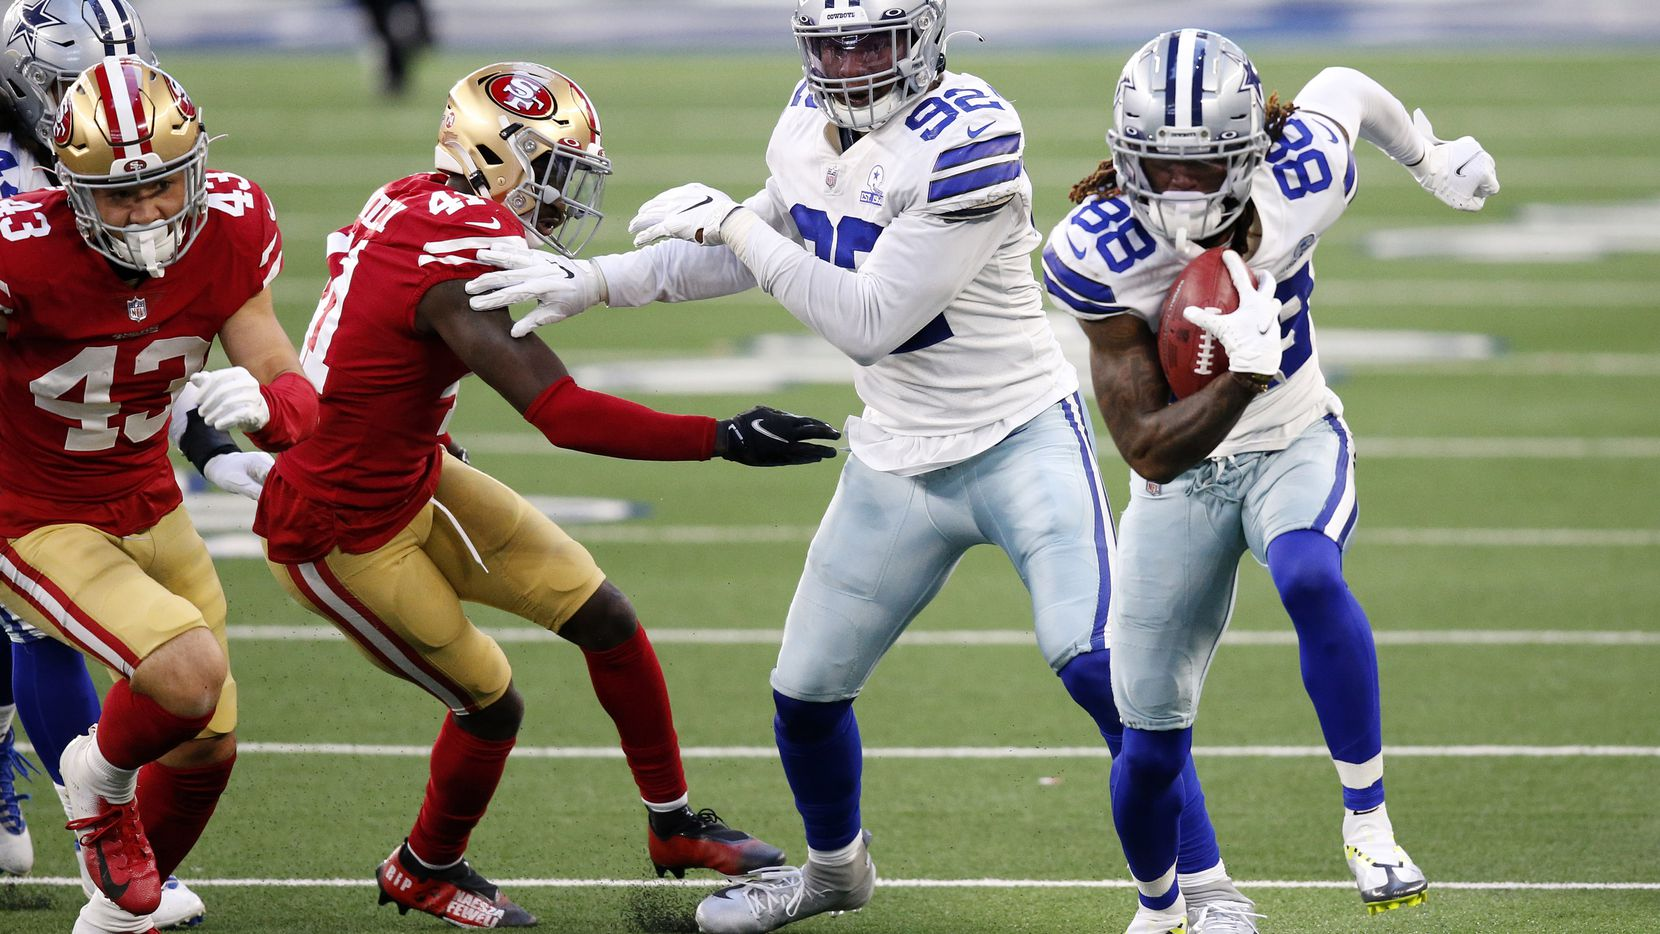 Dallas Cowboys wide receiver CeeDee Lamb (88) picks up an onside kick and races for a fourth quarter touchdown against the San Francisco 49ers at AT&T Stadium in Arlington, Texas, Sunday, December 20, 2020.